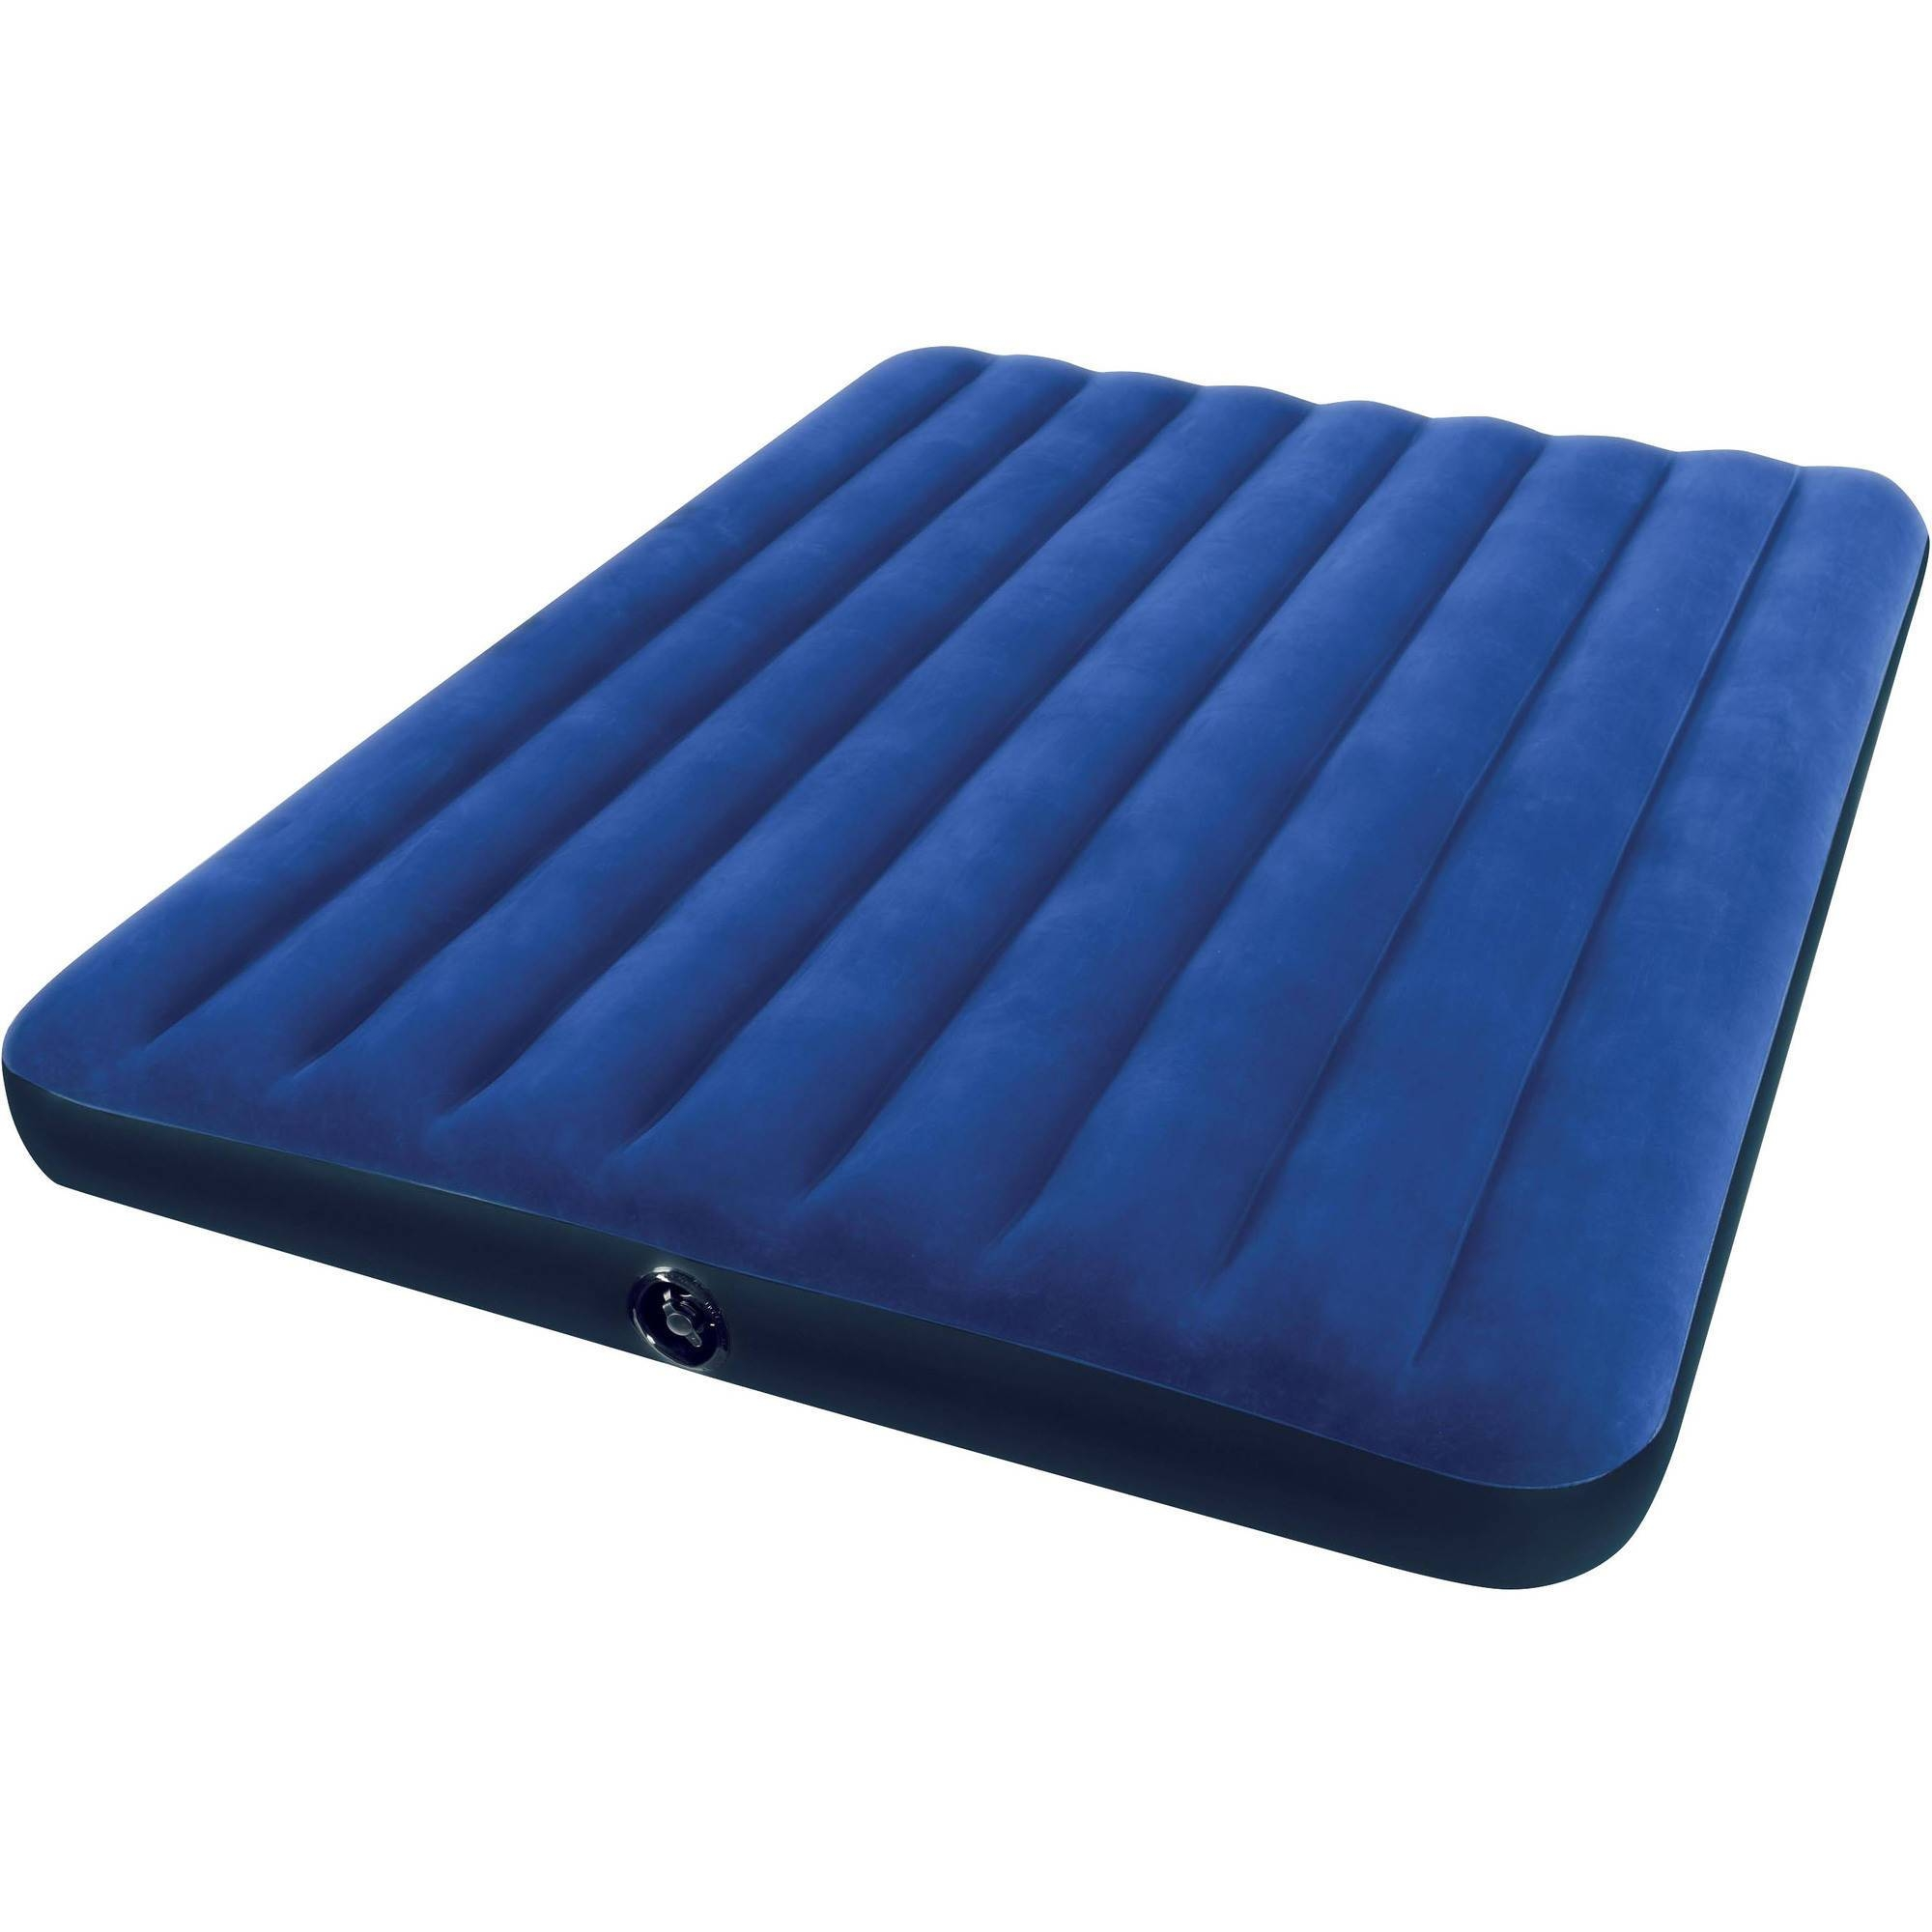 Aerobed 8221 Guest Bed Air Inflatable Mattress, Twin Size pertaining to Inflatable Full Size Mattress (Image 1 of 15)